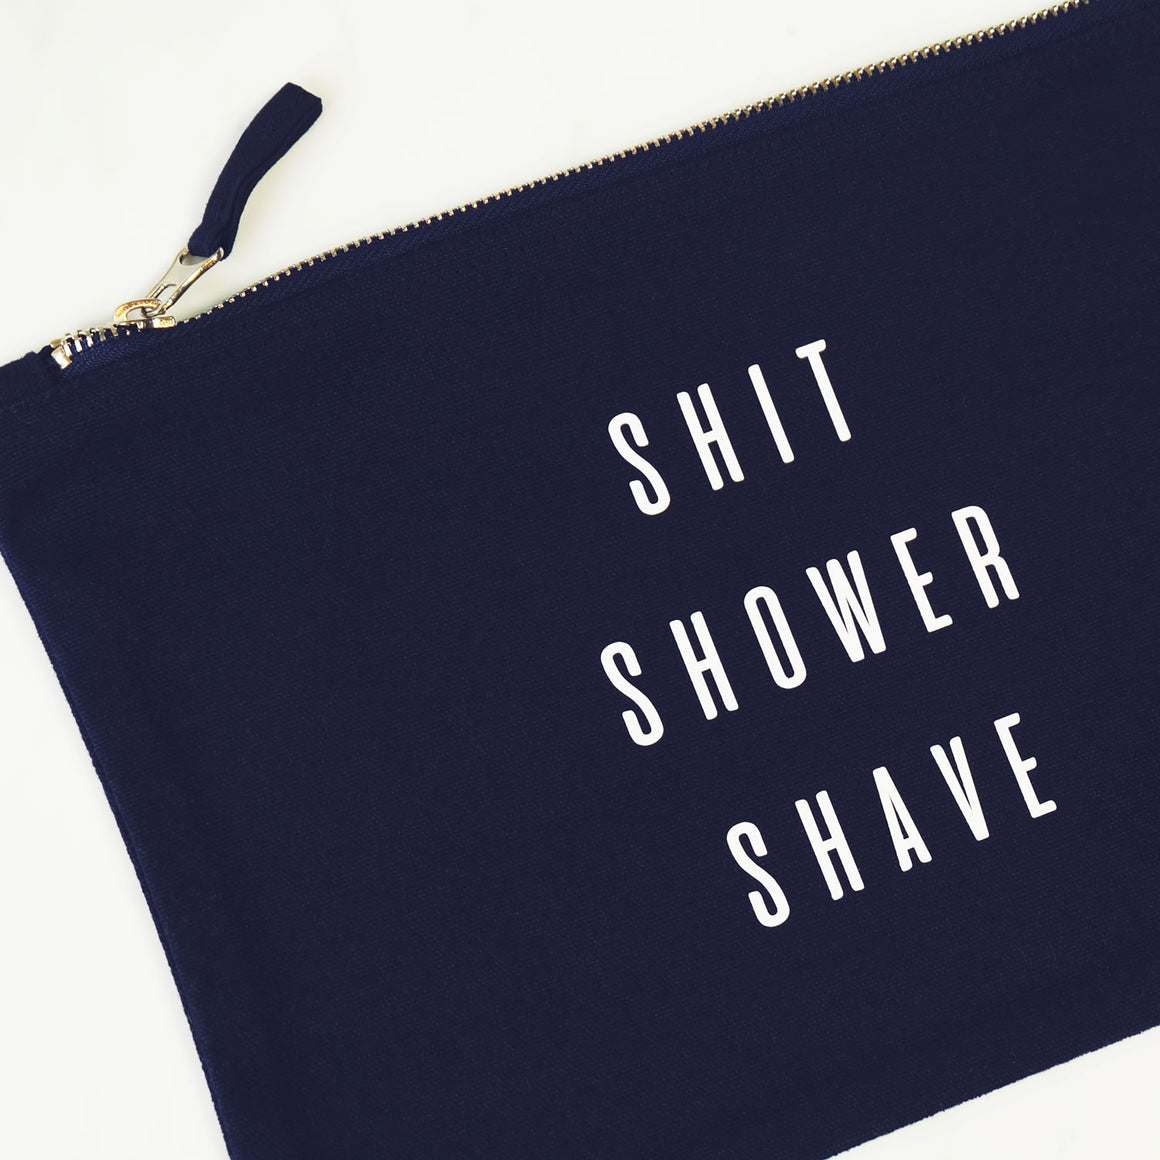 Shit, Shower, Shave Washbag